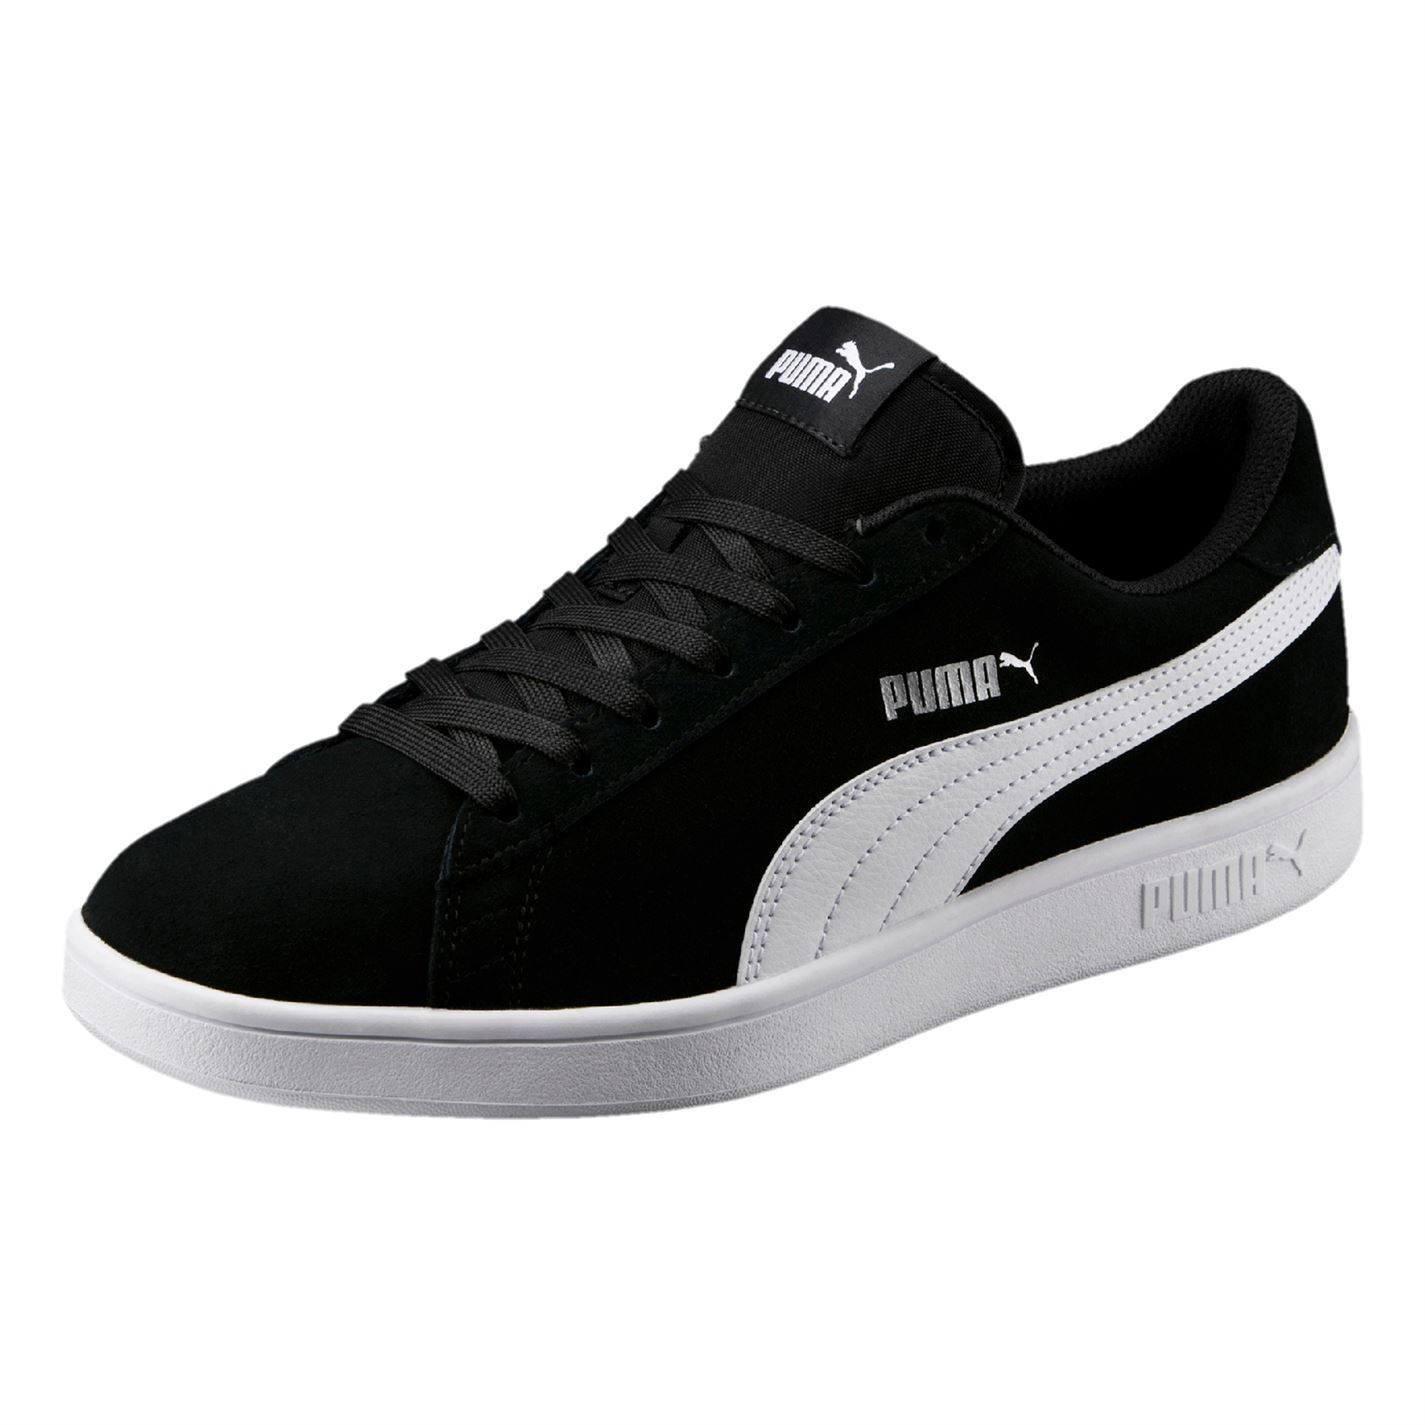 Puma-Smash-V2-Suede-Trainers-Mens-Shoes-Sneakers-Athleisure-Footwear thumbnail 3